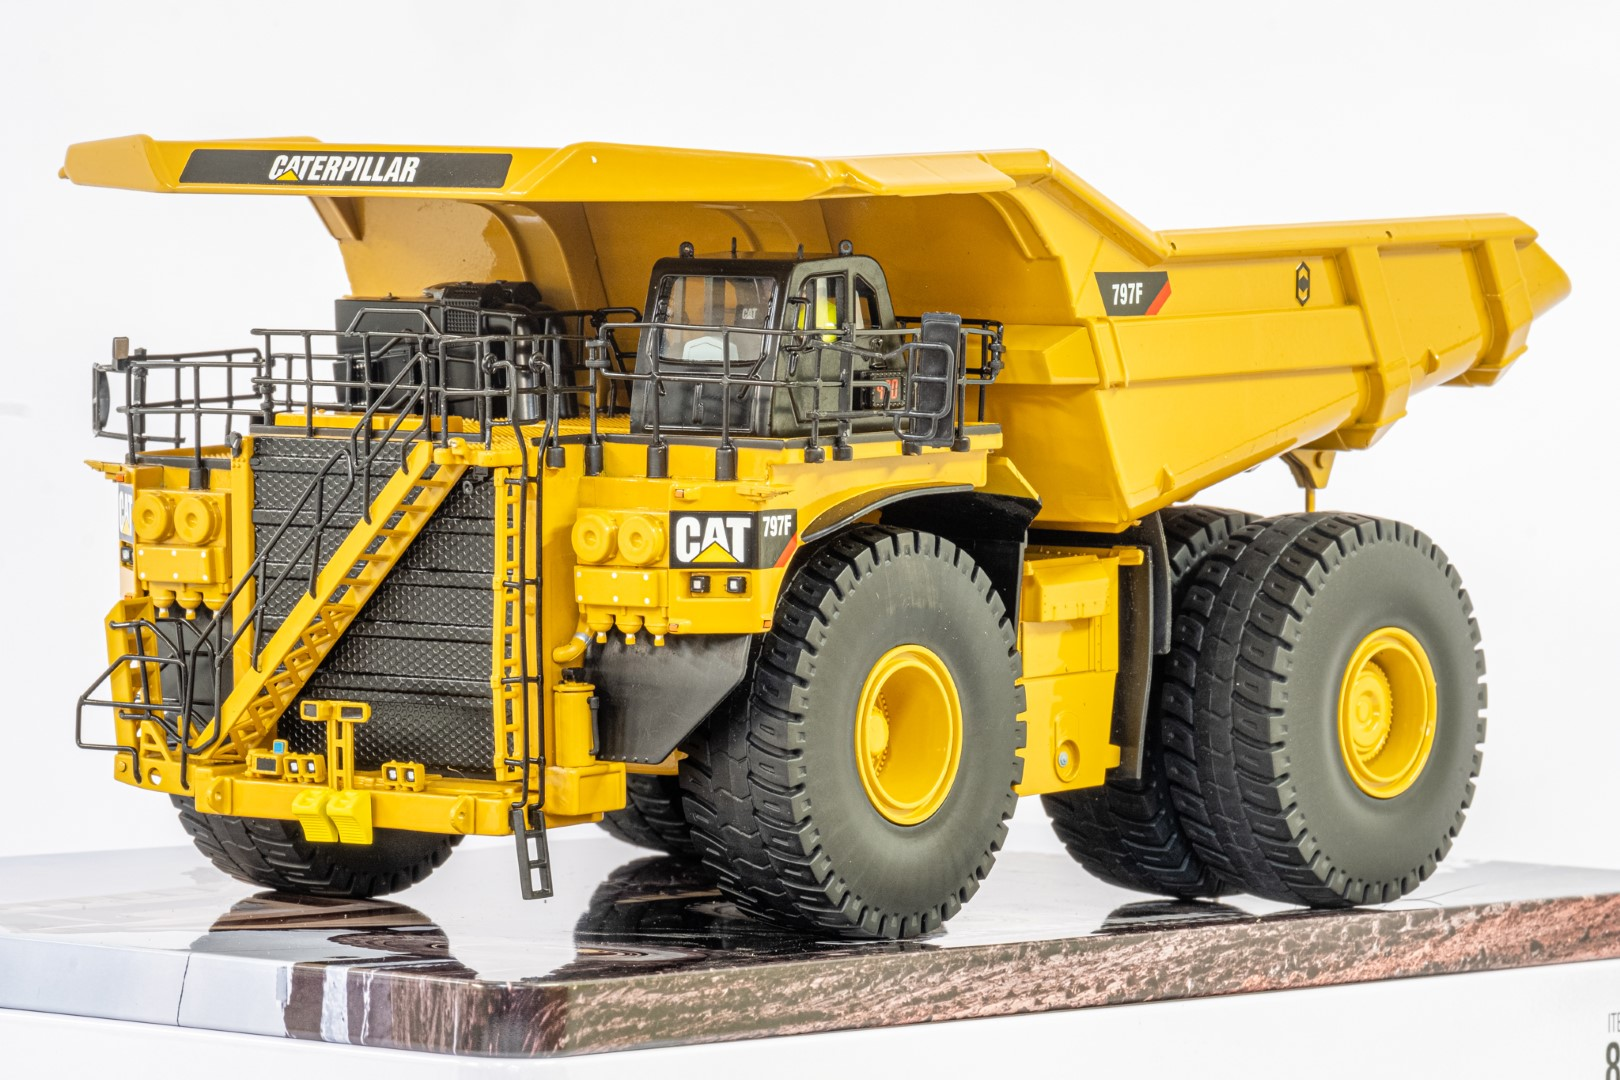 Diecast Masters CAT 797F Tier 4 Mining Truck - Mint condition - Image 3 of 6